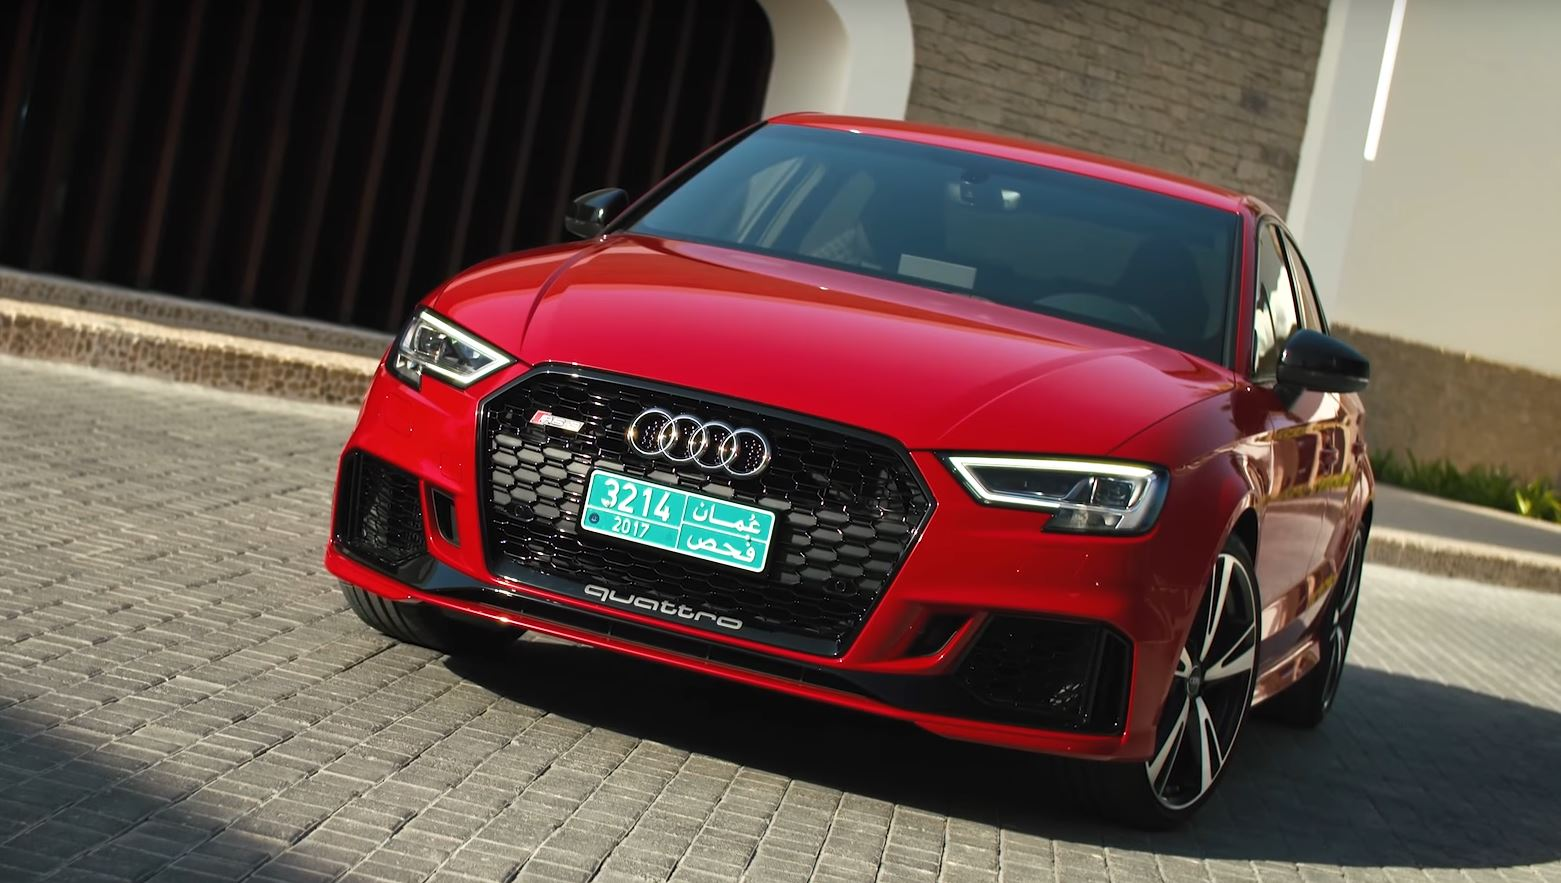 2018 audi rs3 sedan is a 2 5l turbo practical rocket says review autoevolution. Black Bedroom Furniture Sets. Home Design Ideas